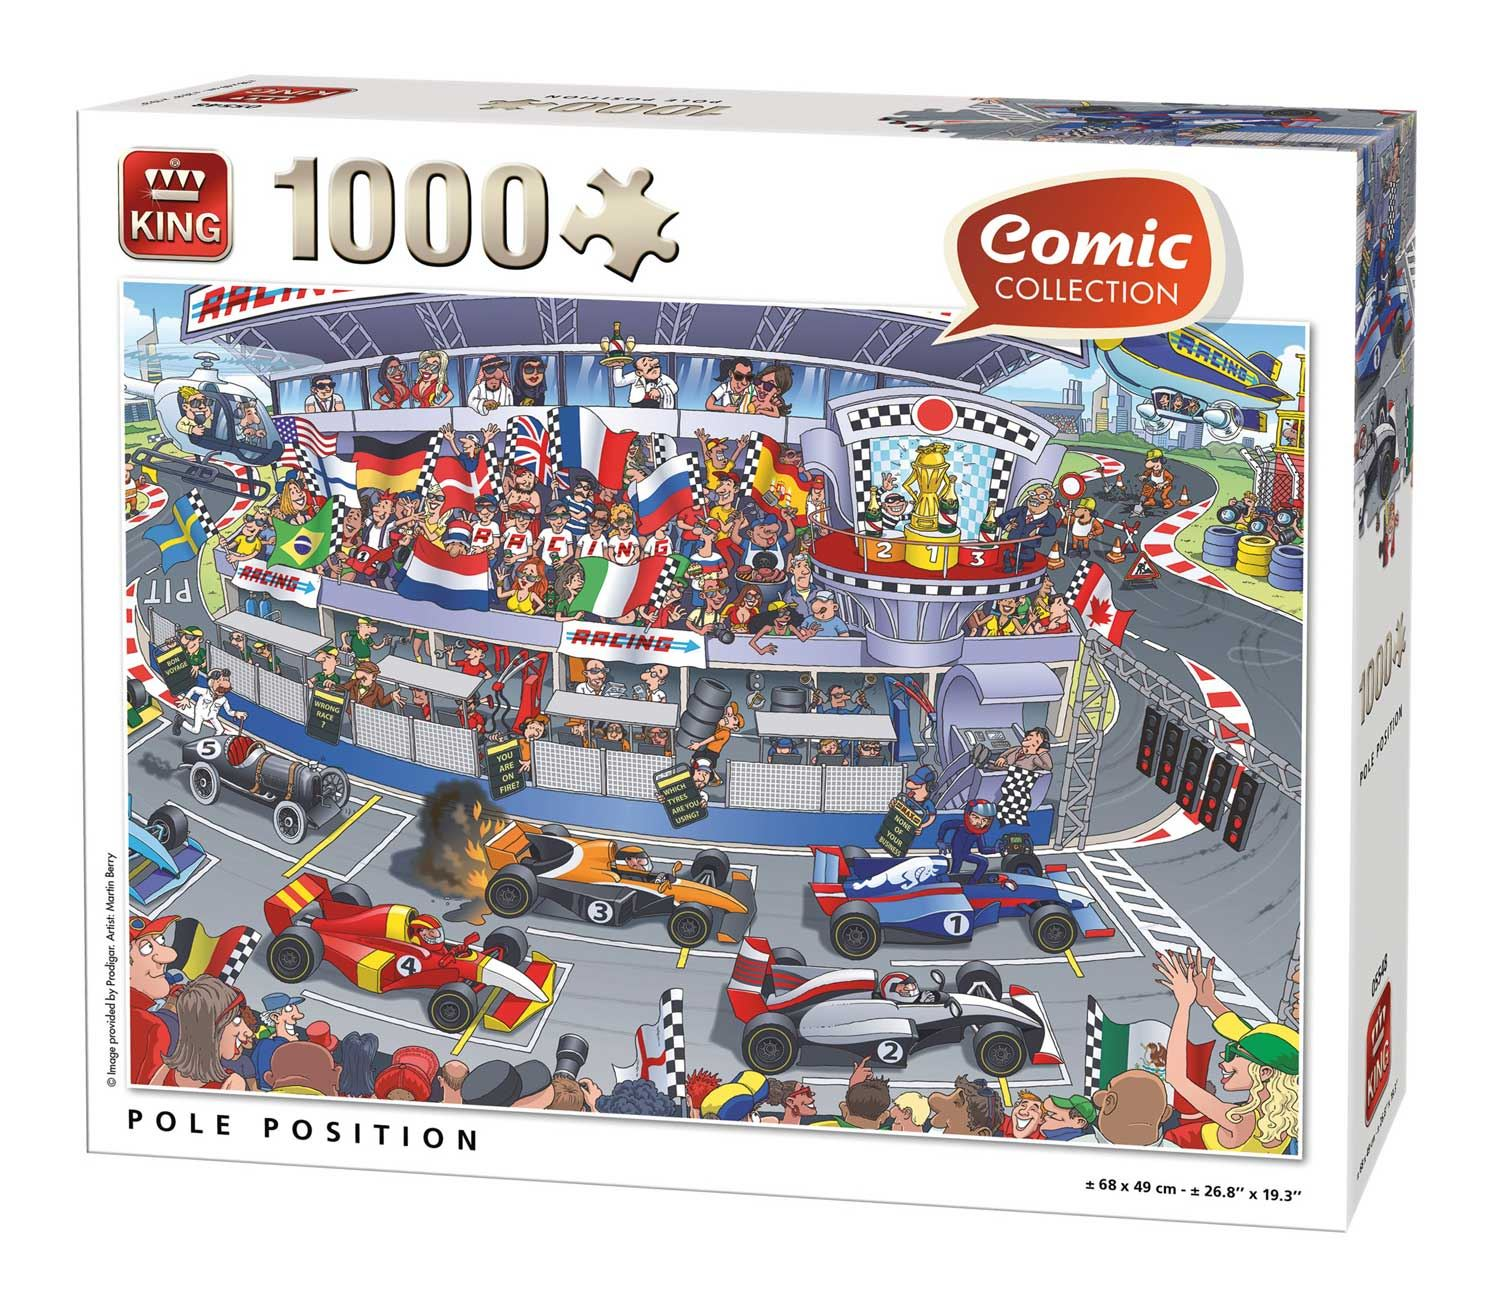 King Pole Position Jigsaw Puzzle (1000 Pieces)